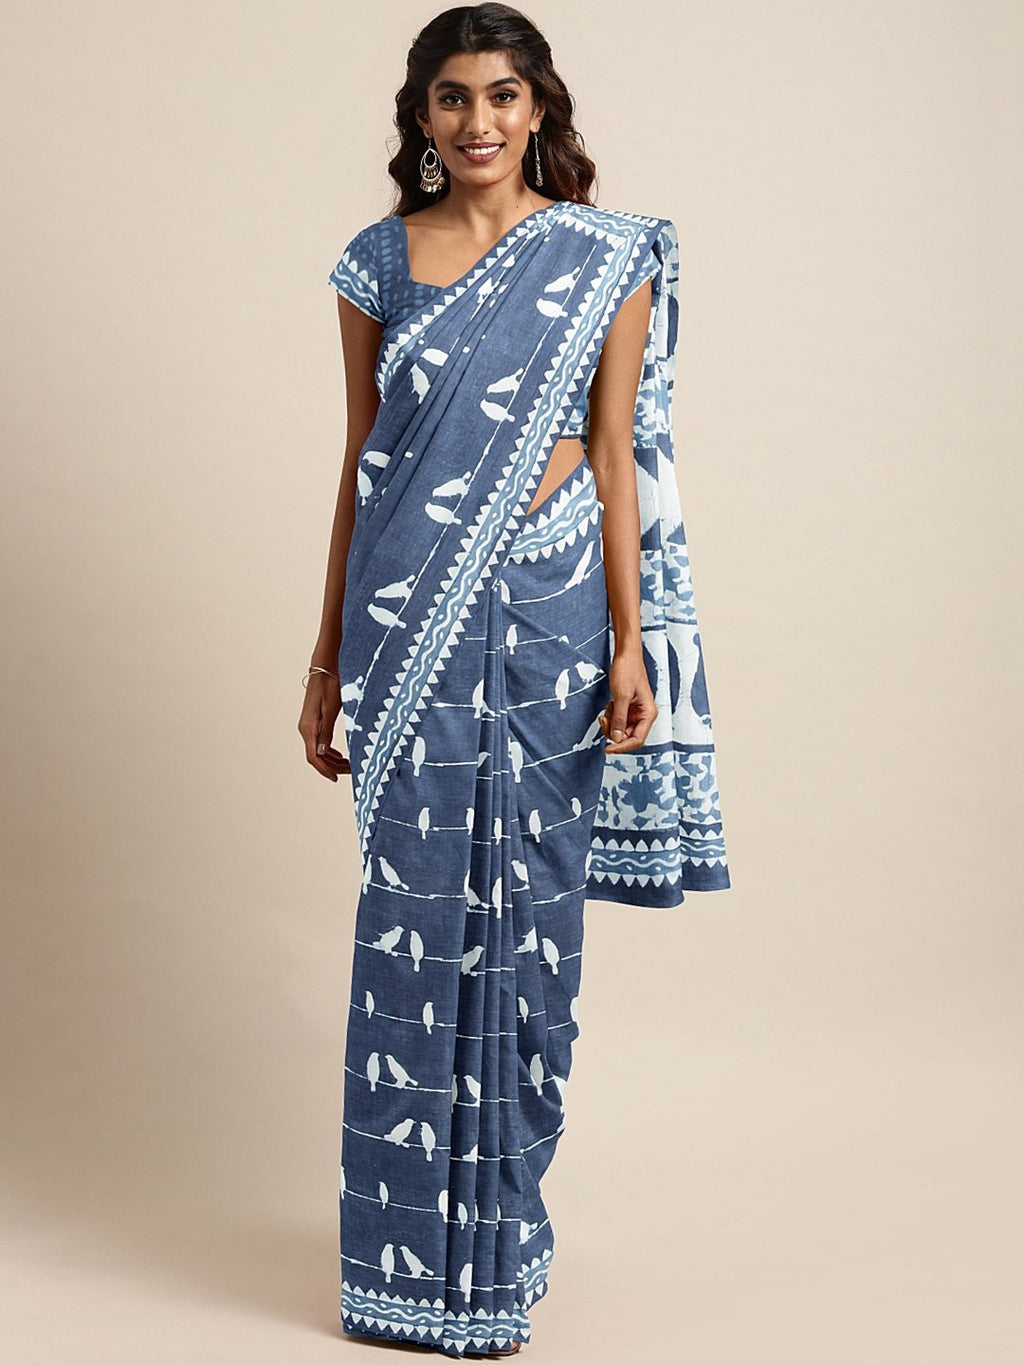 Blue White Dabu Handblock Print Bagru Saree-Saree-Kalakari India-BHKPSA0088-Cotton, Dabu, Geographical Indication, Hand Blocks, Hand Crafted, Heritage Prints, Indigo, Natural Dyes, Sarees, Sustainable Fabrics-[Linen,Ethnic,wear,Fashionista,Handloom,Handicraft,Indigo,blockprint,block,print,Cotton,Chanderi,Blue, latest,classy,party,bollywood,trendy,summer,style,traditional,formal,elegant,unique,style,hand,block,print, dabu,booti,gift,present,glamorous,affordable,collectible,Sari,Saree,printed, hol